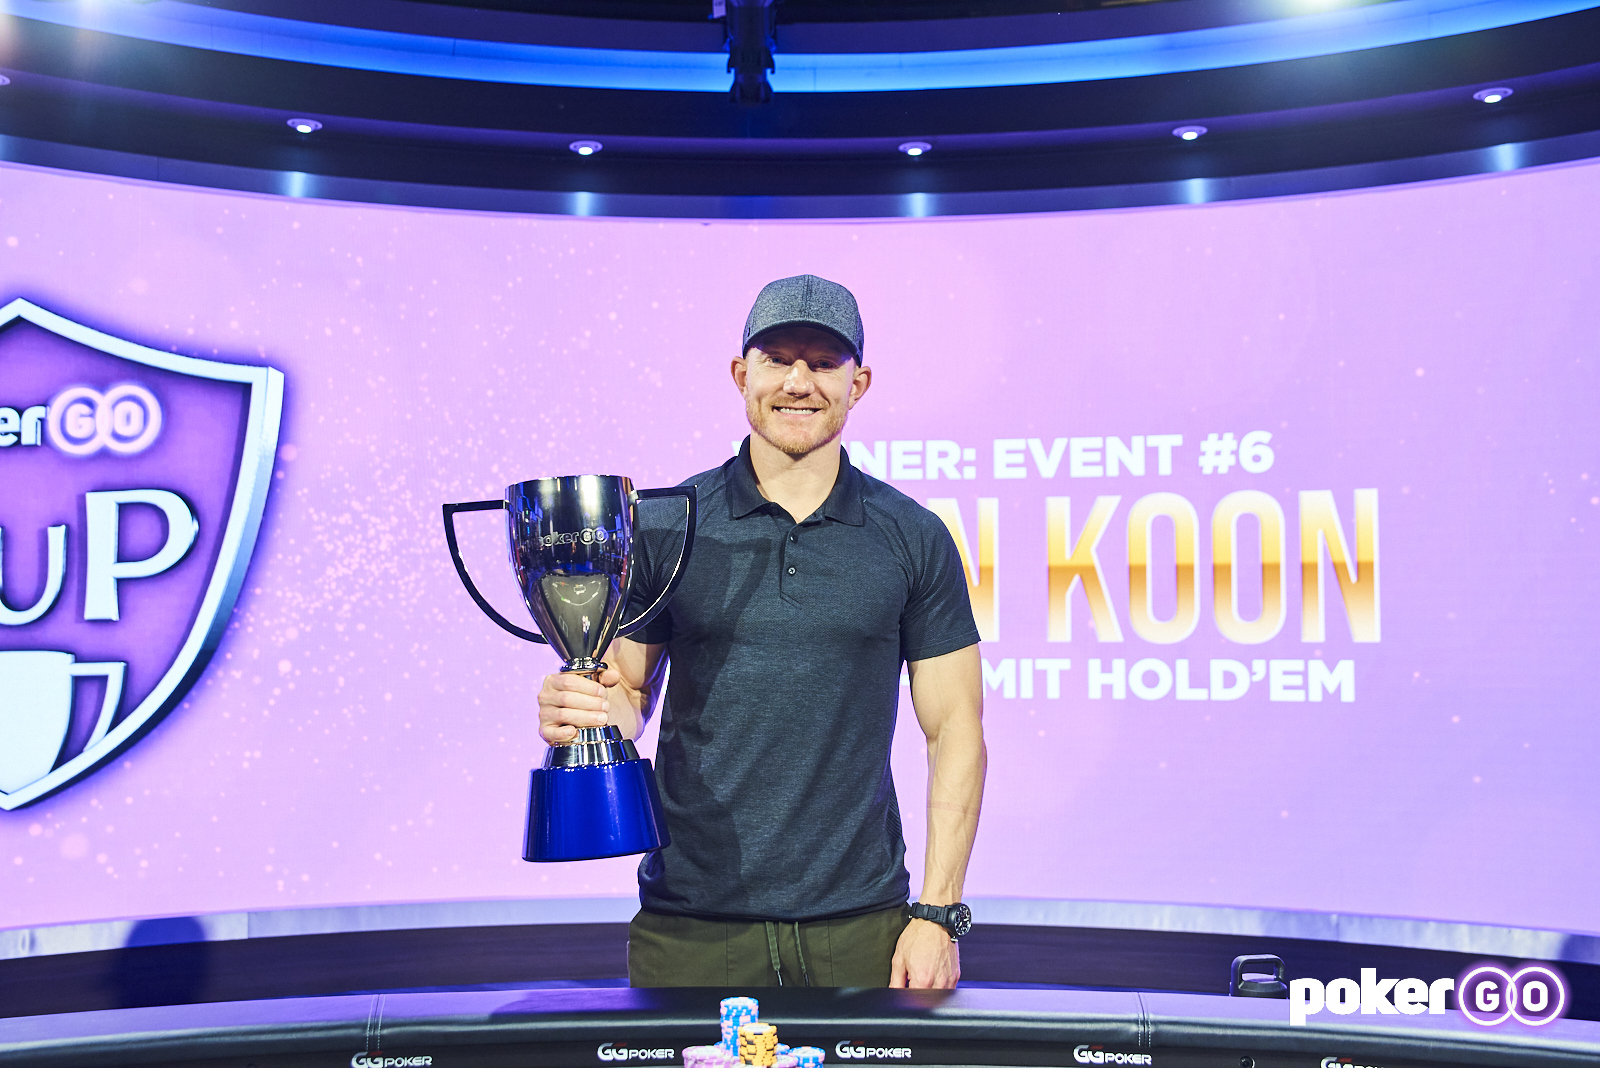 Jason Koon wins Event #6 at the 2021 PokerGO Cup